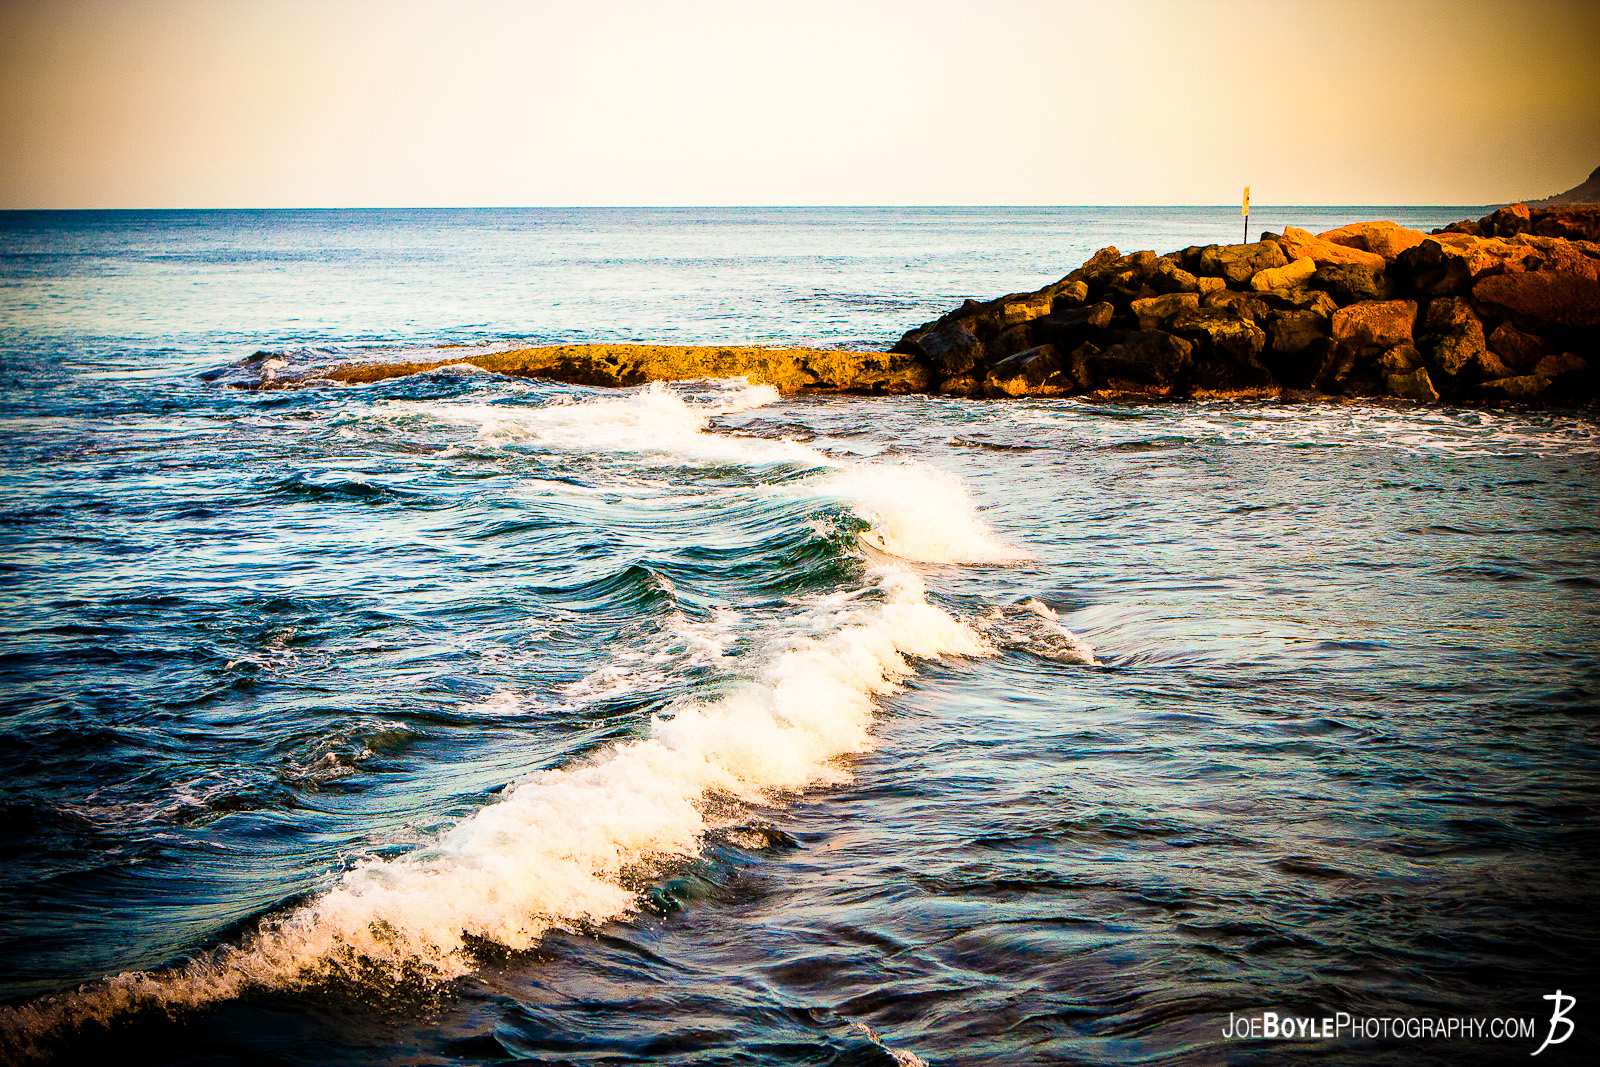 While on a trip to Hawaii I was able to capture this peaceful ocean wave at sunset. It took a few tries to be able to capture it but this is the one I liked the most. I took this near the Disney Aulani Resort on Oahu.